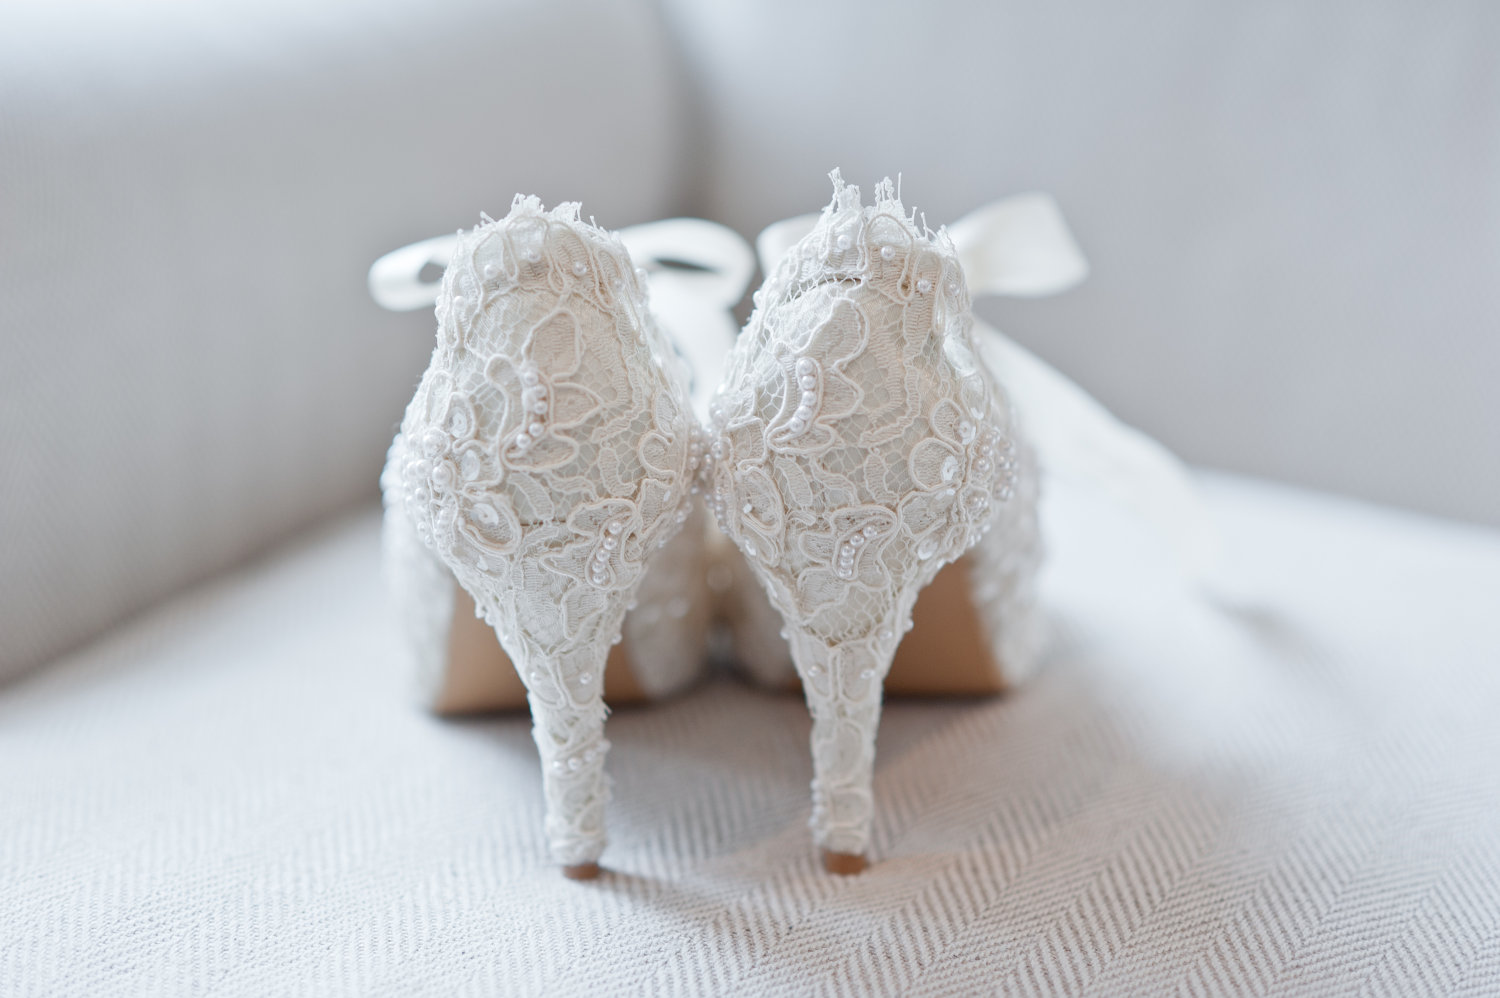 Handmade-weddings-how-to-style-a-romantic-winter-wedding-lace-heels.original